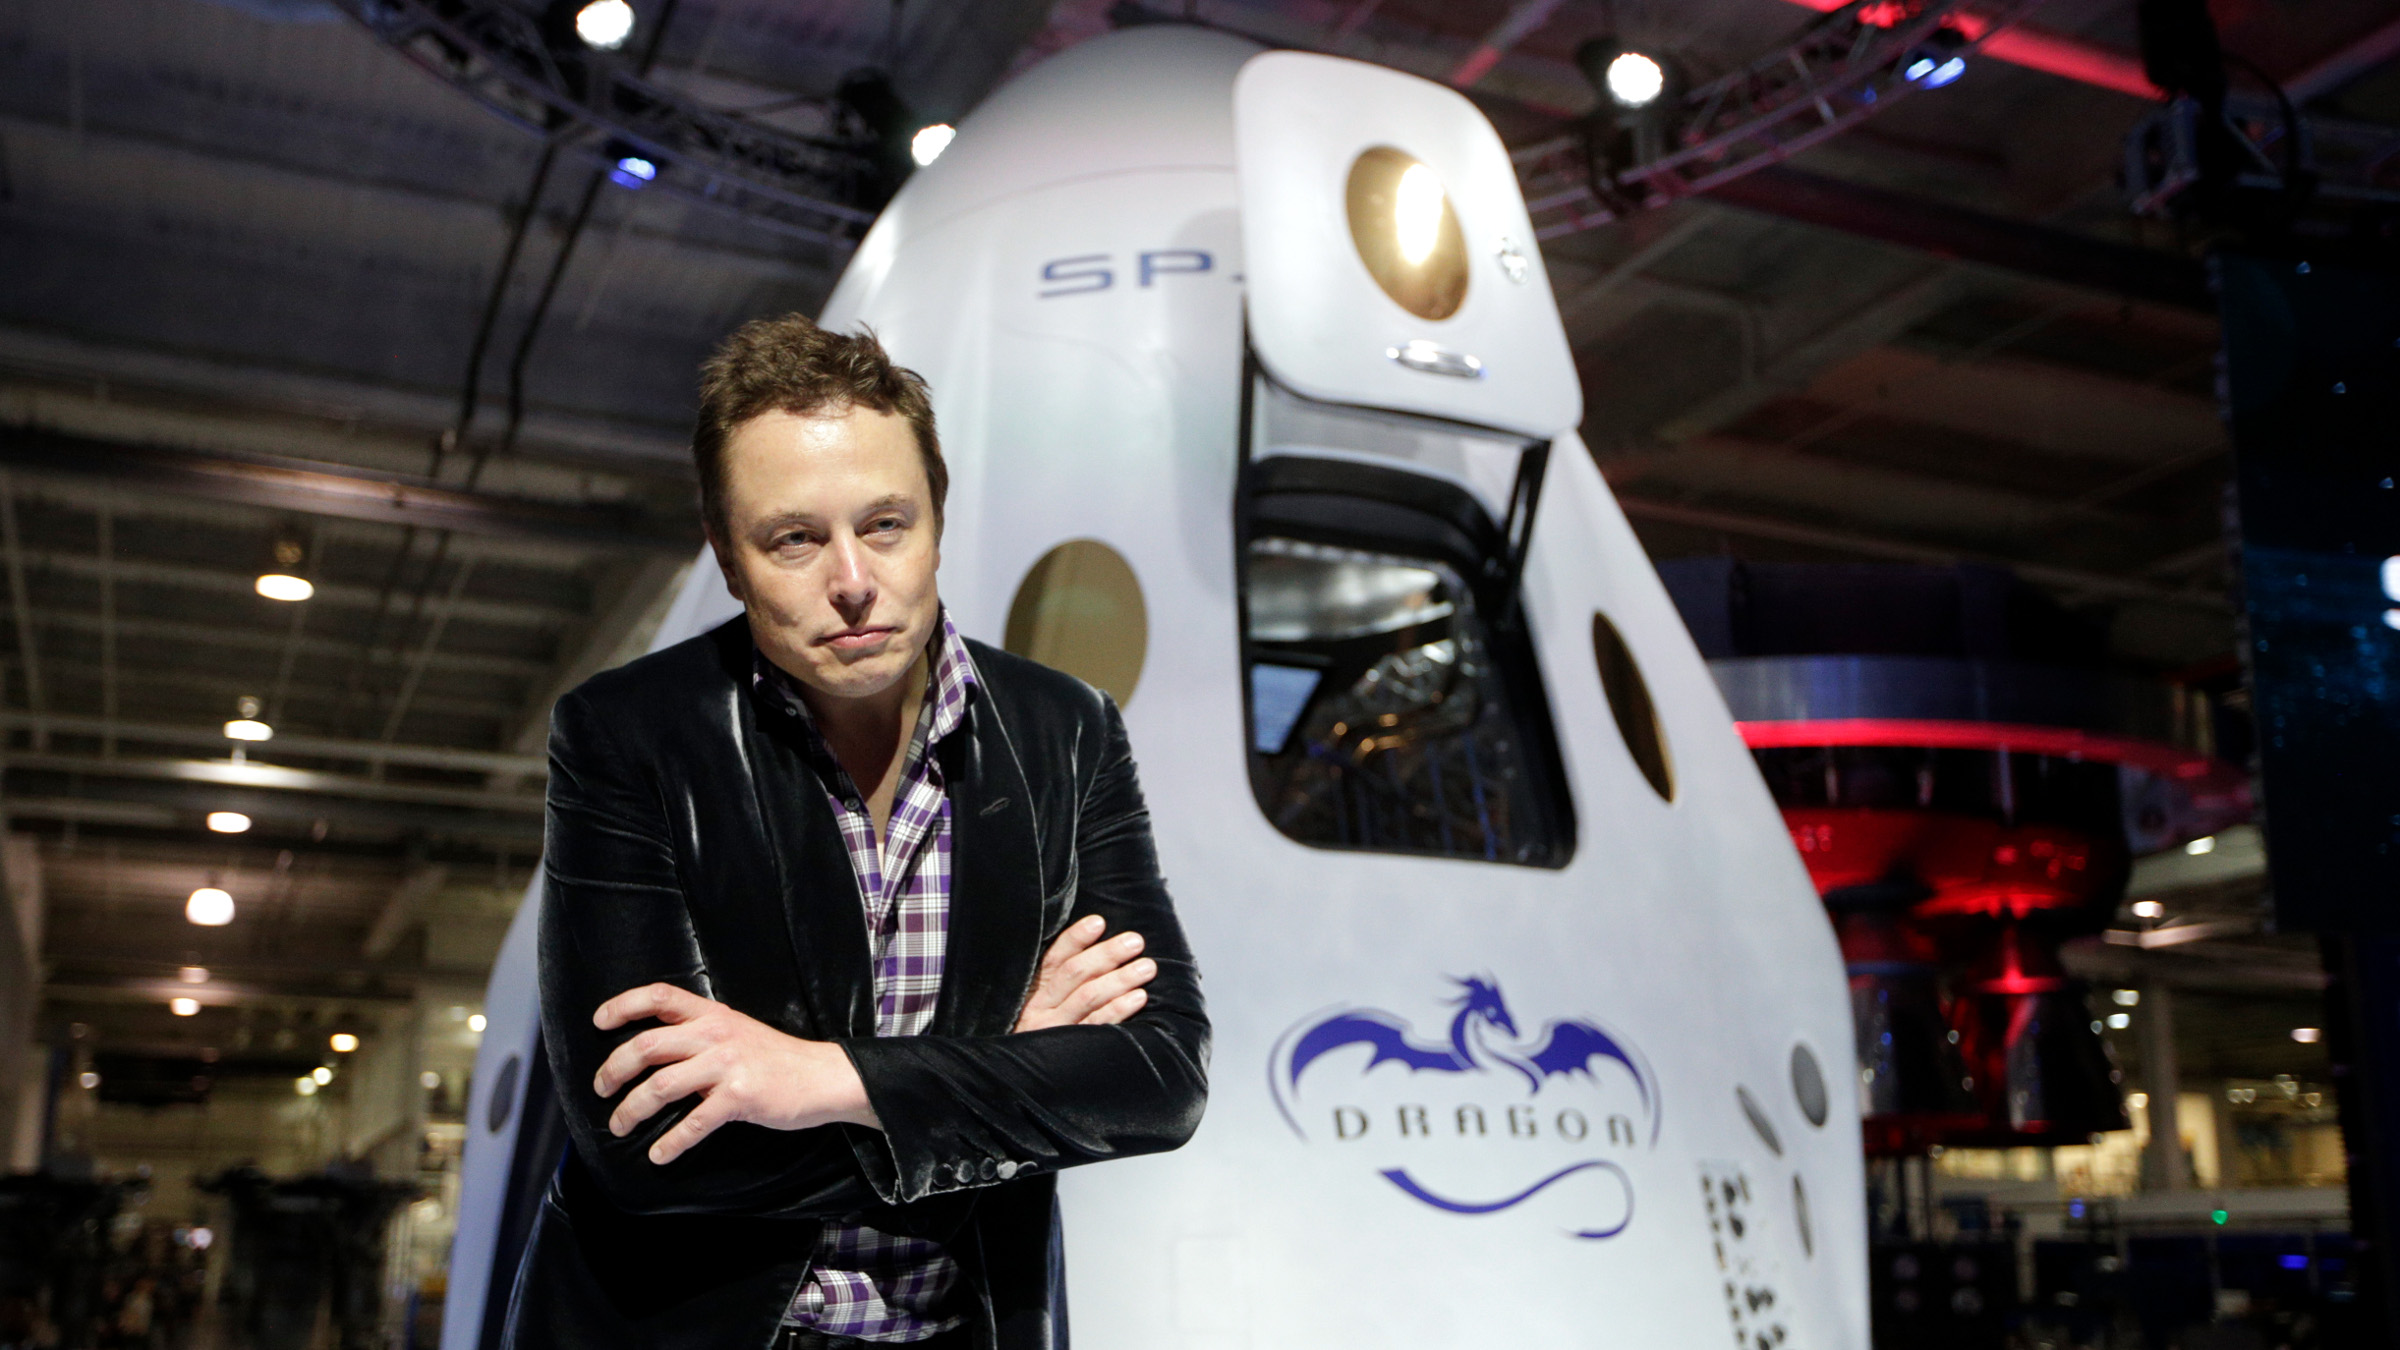 Elon Musk, CEO and CTO of SpaceX, listens to a question from the media in front of the SpaceX Dragon V2 spaceship at the headquarters on Thursday, May 29, 2014, in Hawthorne, Calif. SpaceX, which has flown unmanned cargo capsules to the International Space Station, unveiled the new spacecraft Thursday designed to ferry astronauts to low-Earth orbit. )